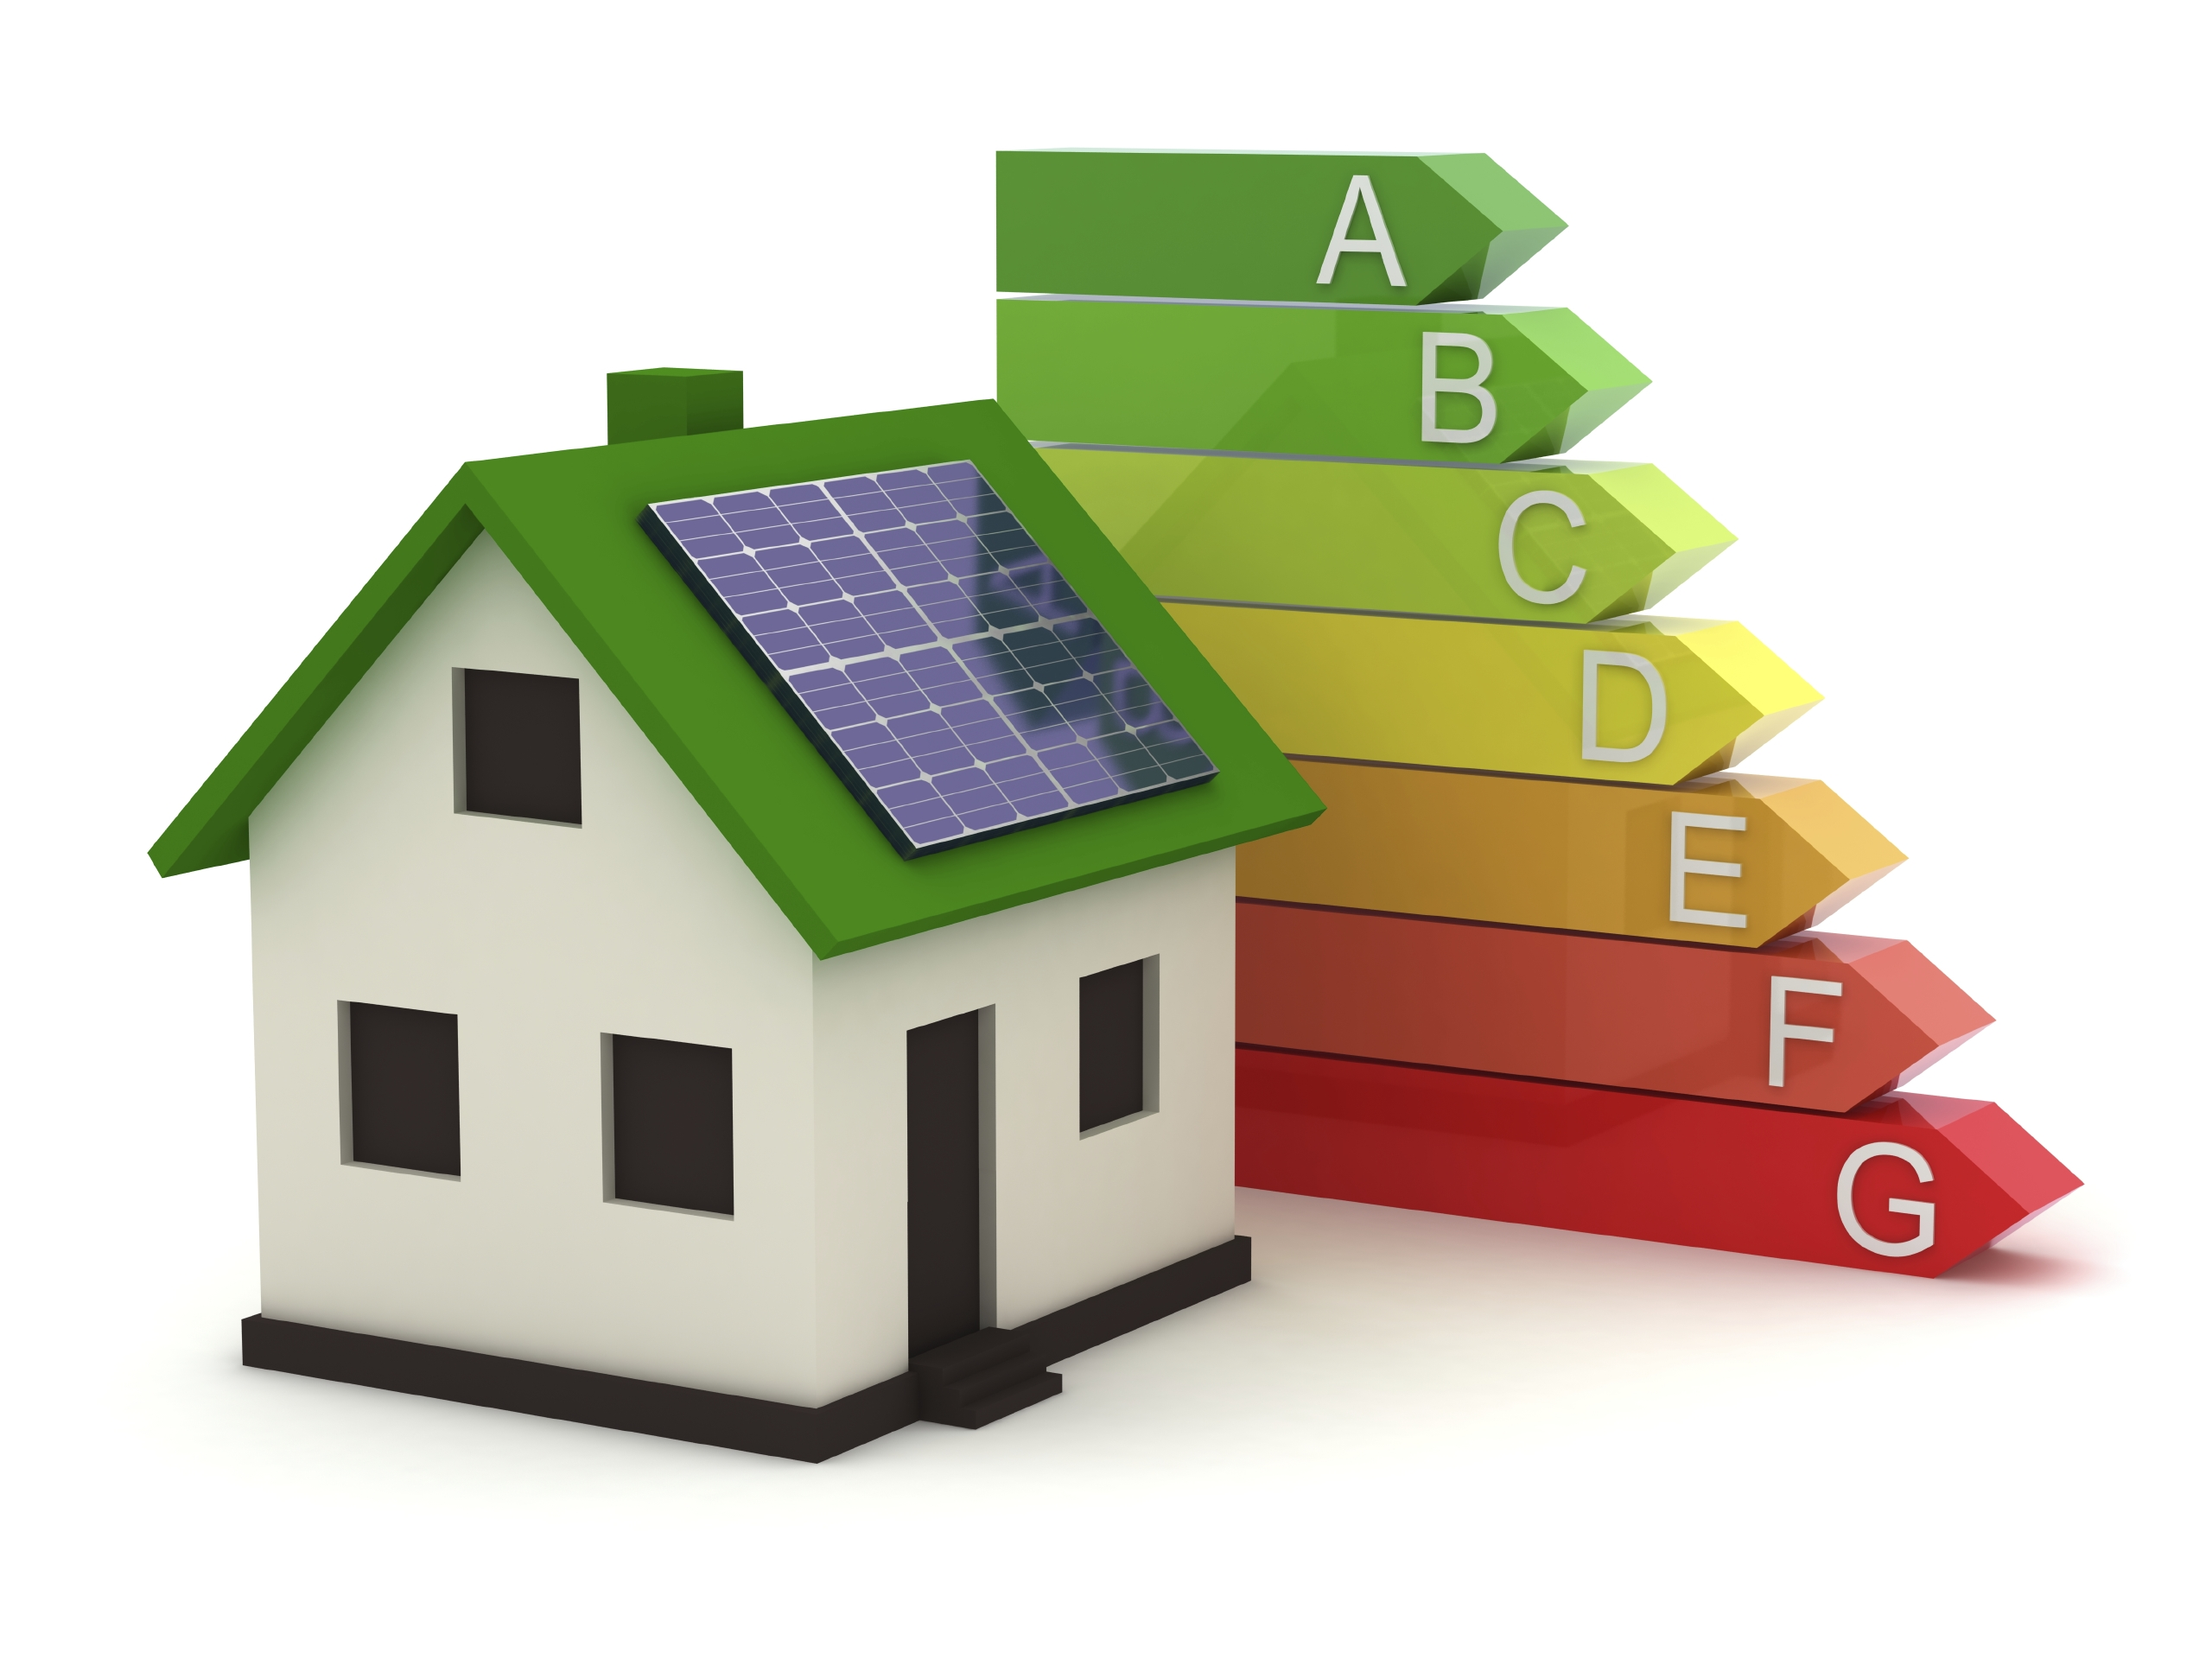 Energy Efficiency Consulting – Online - work from home, or office